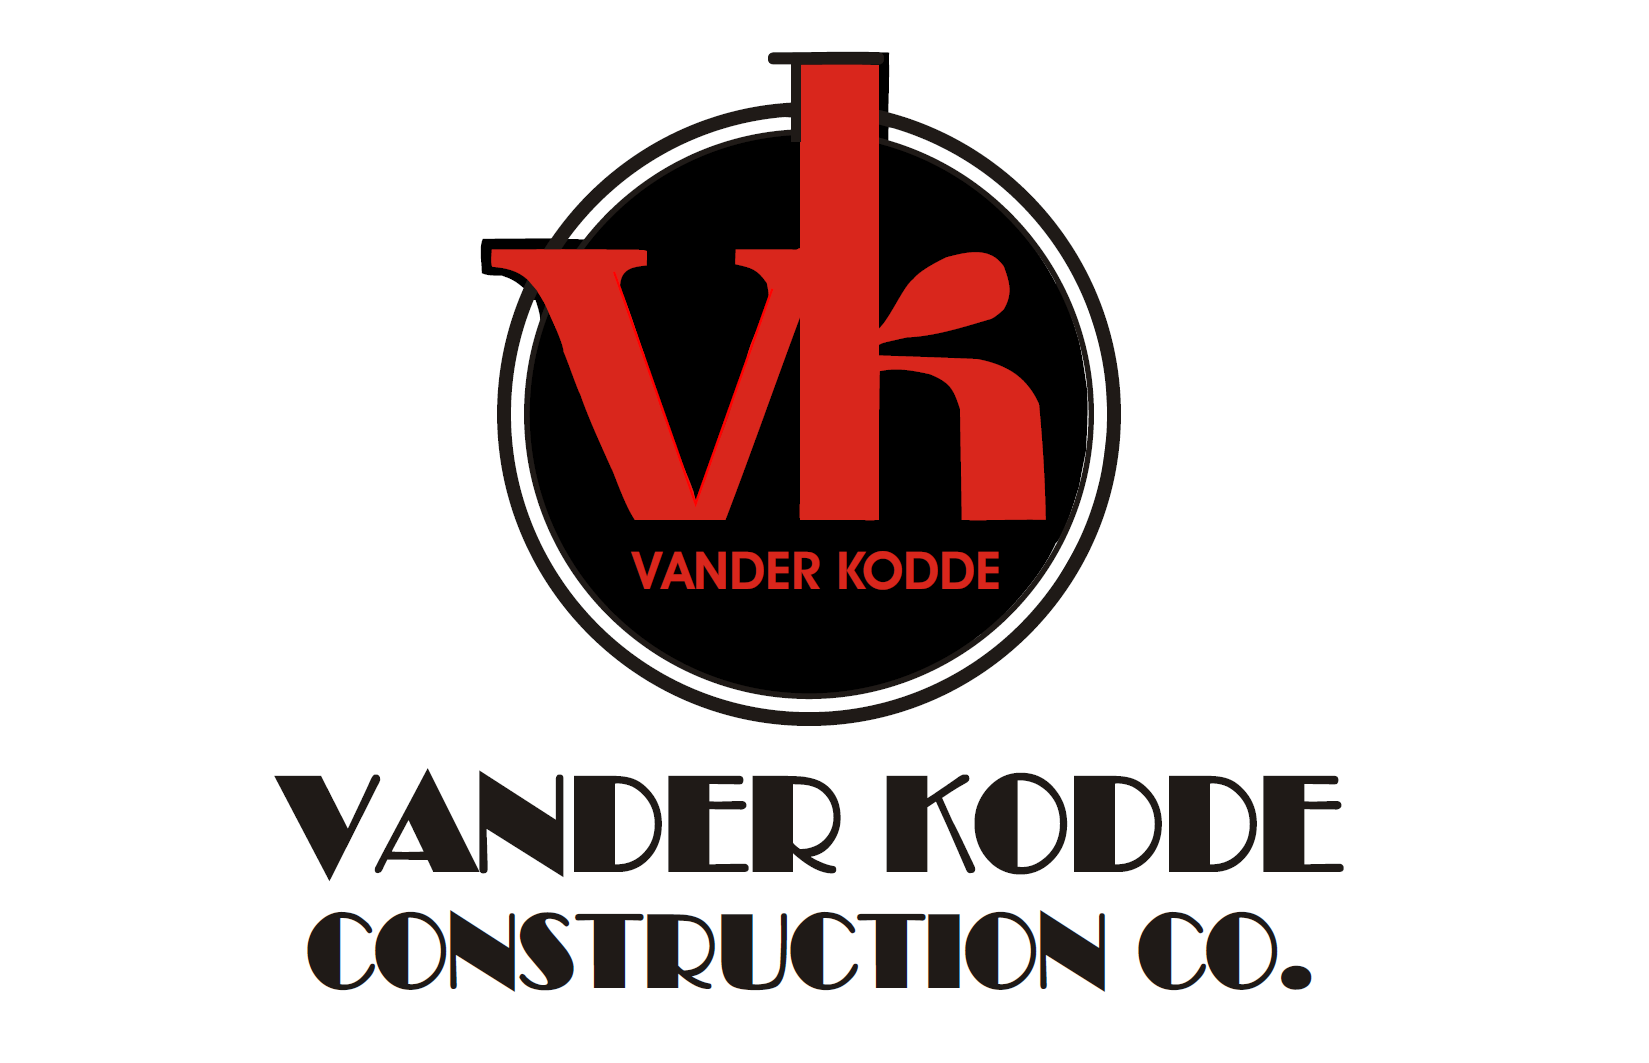 VanderKodde Construction